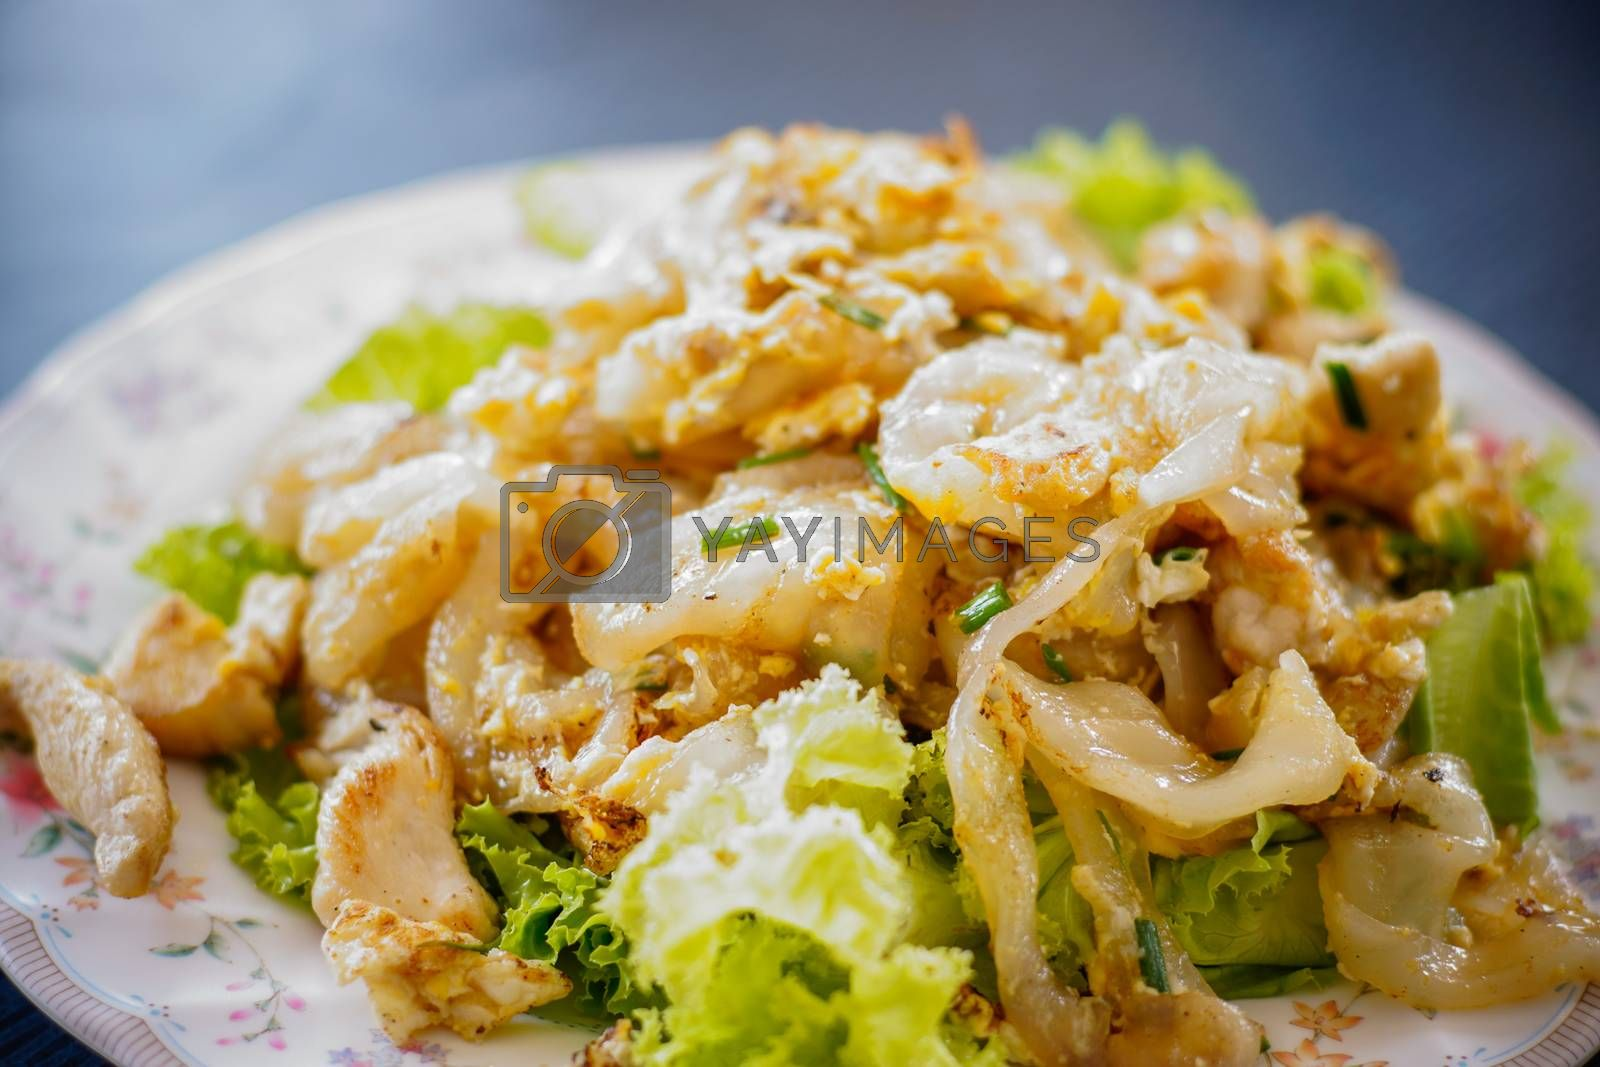 Royalty free image of fried noodles with chicken by antpkr